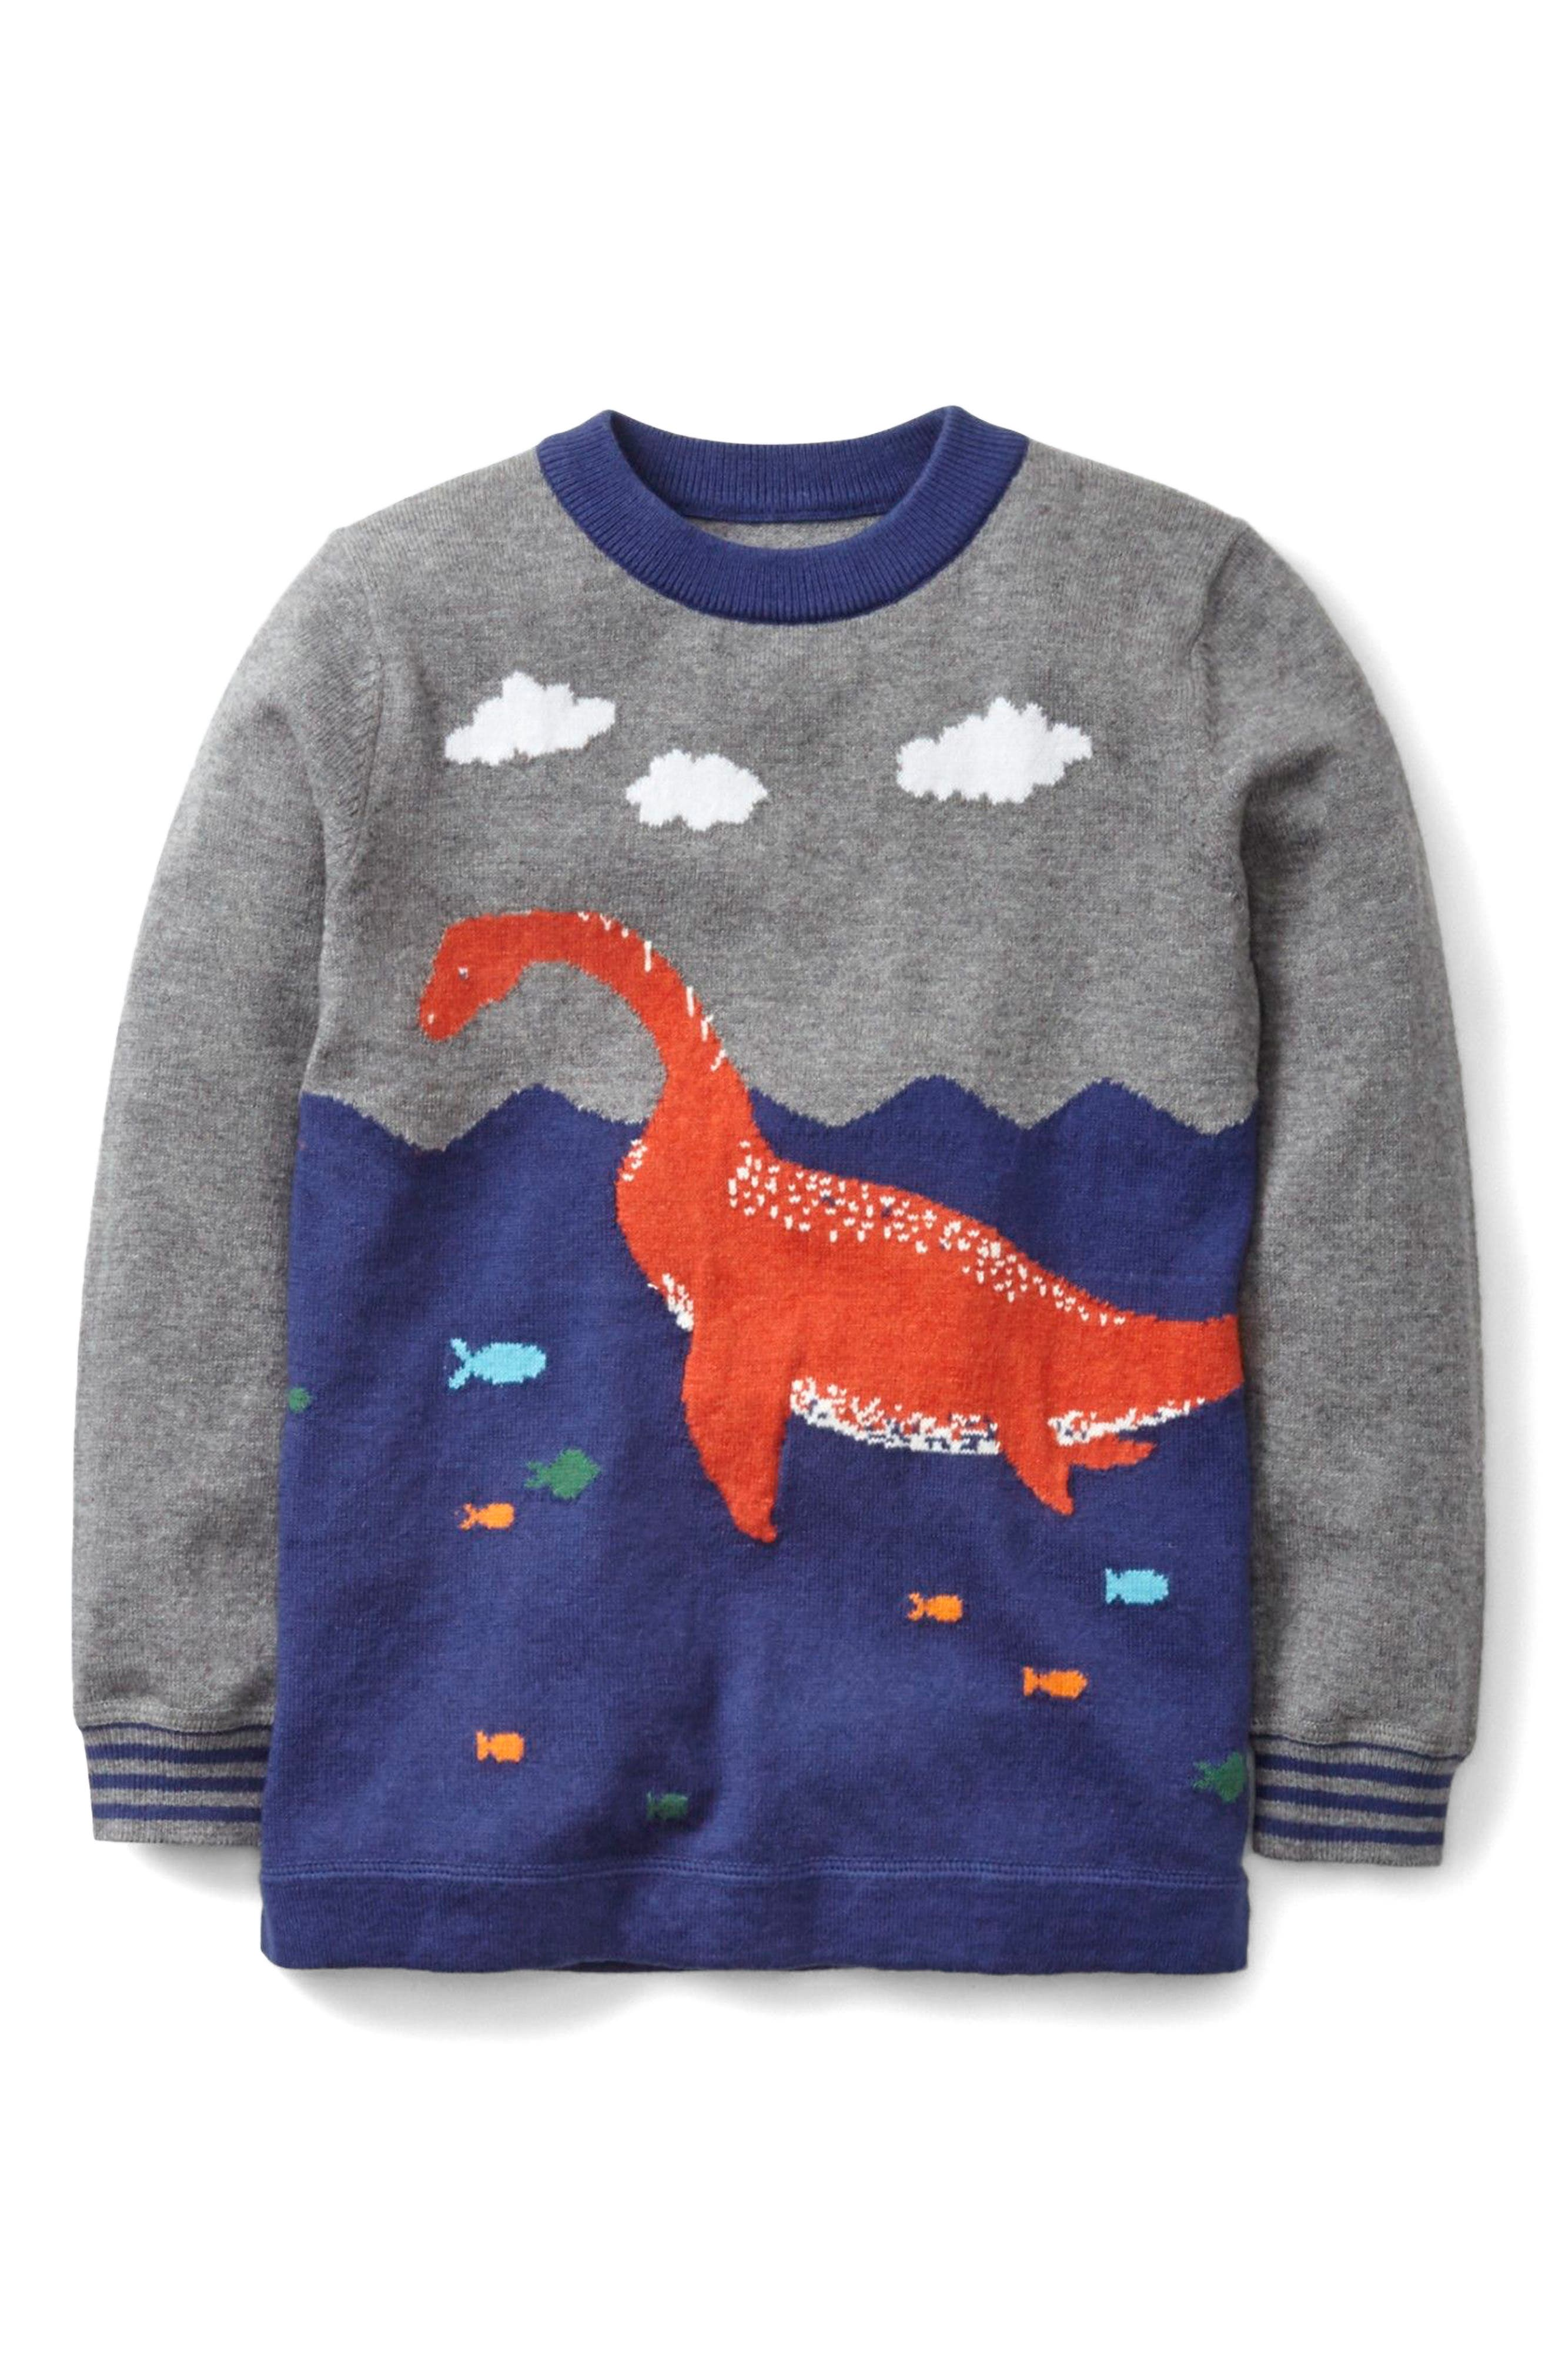 MINI BODEN Intarsia Knit Sweater